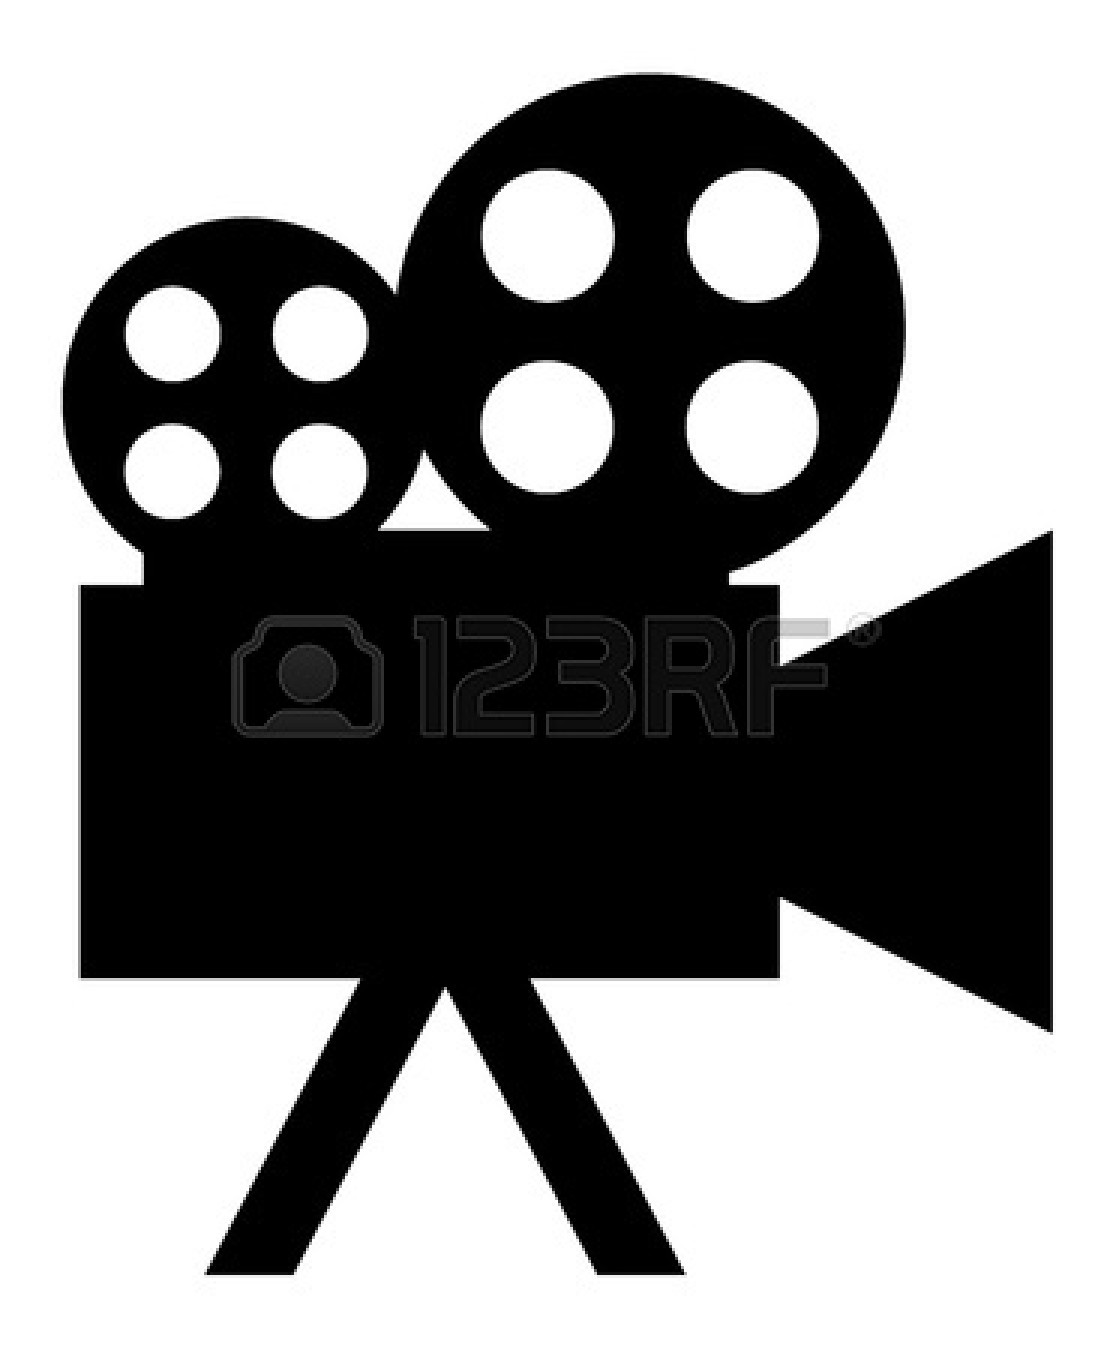 Movie projector images clipart clipart freeuse stock 74+ Movie Projector Clipart | ClipartLook clipart freeuse stock